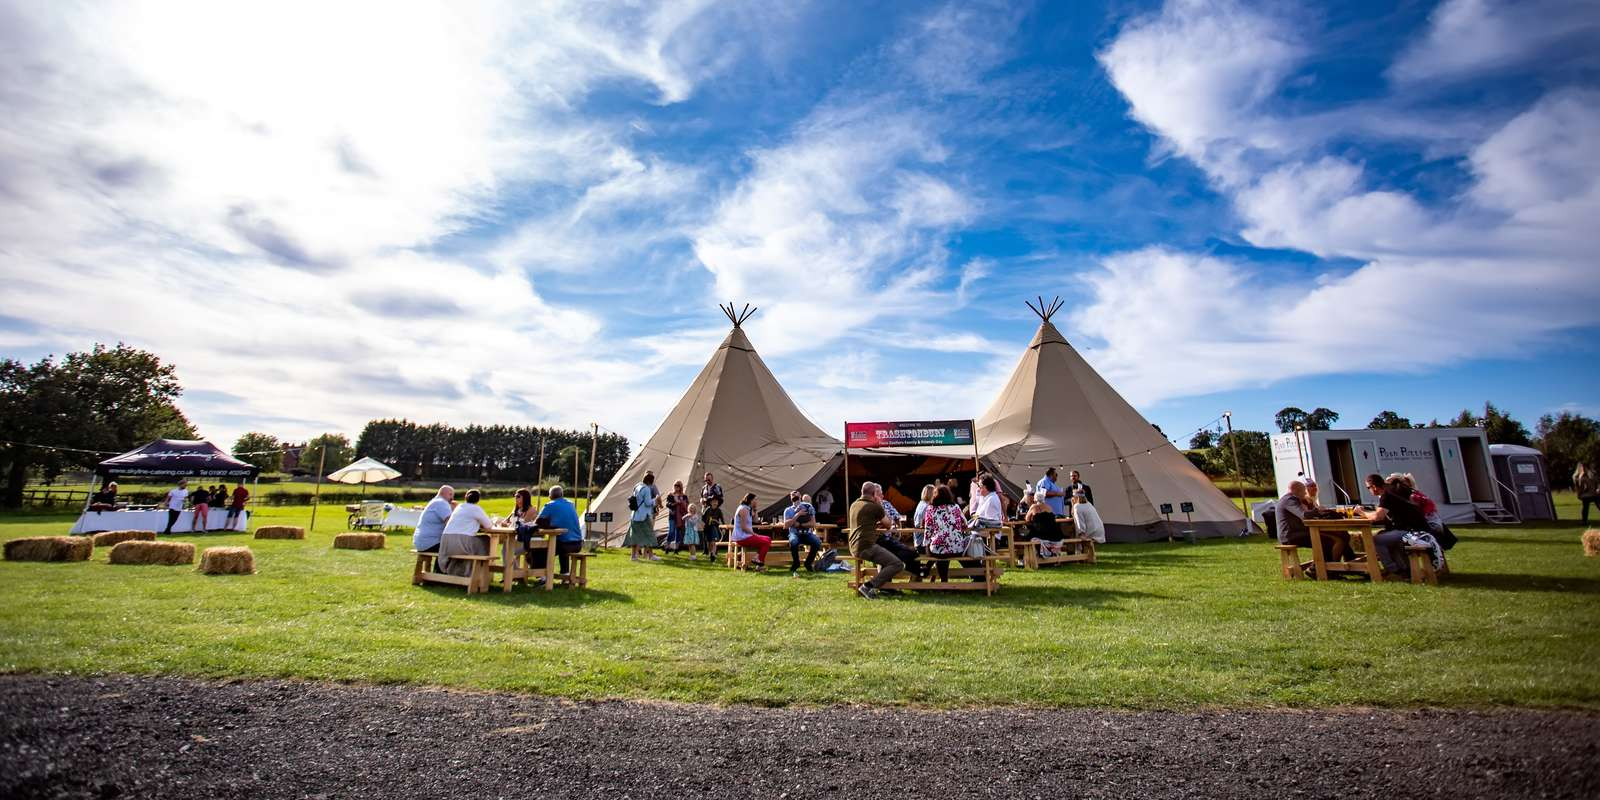 Outood Tipi Family Fun Day